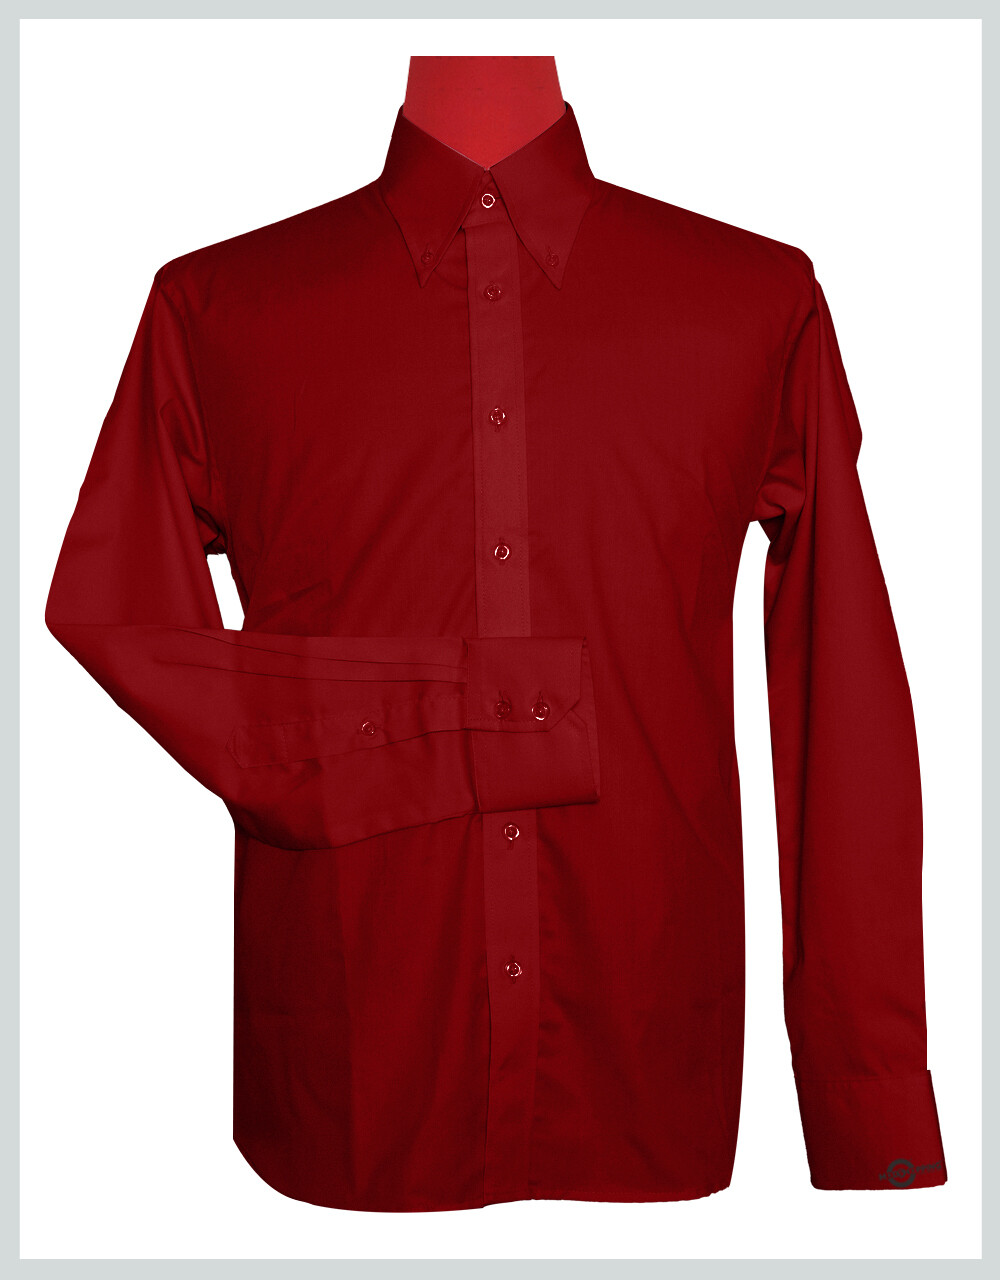 Button-Down Collar Shirt | Red Color Shirt For Man